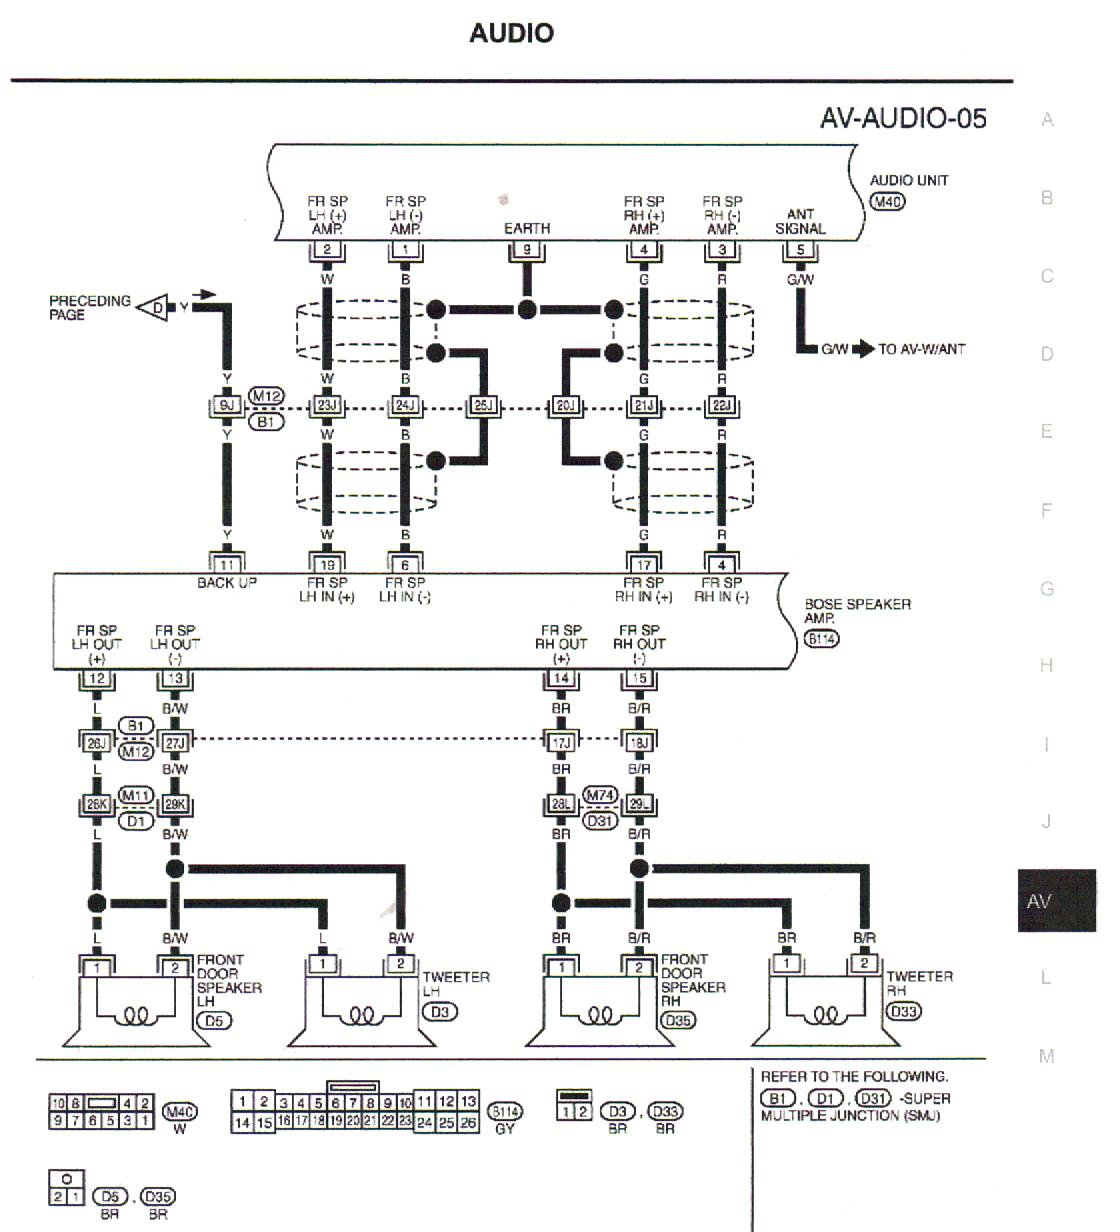 speaker wiring diagram viper anchor winch car audio crossover diagrams get free image